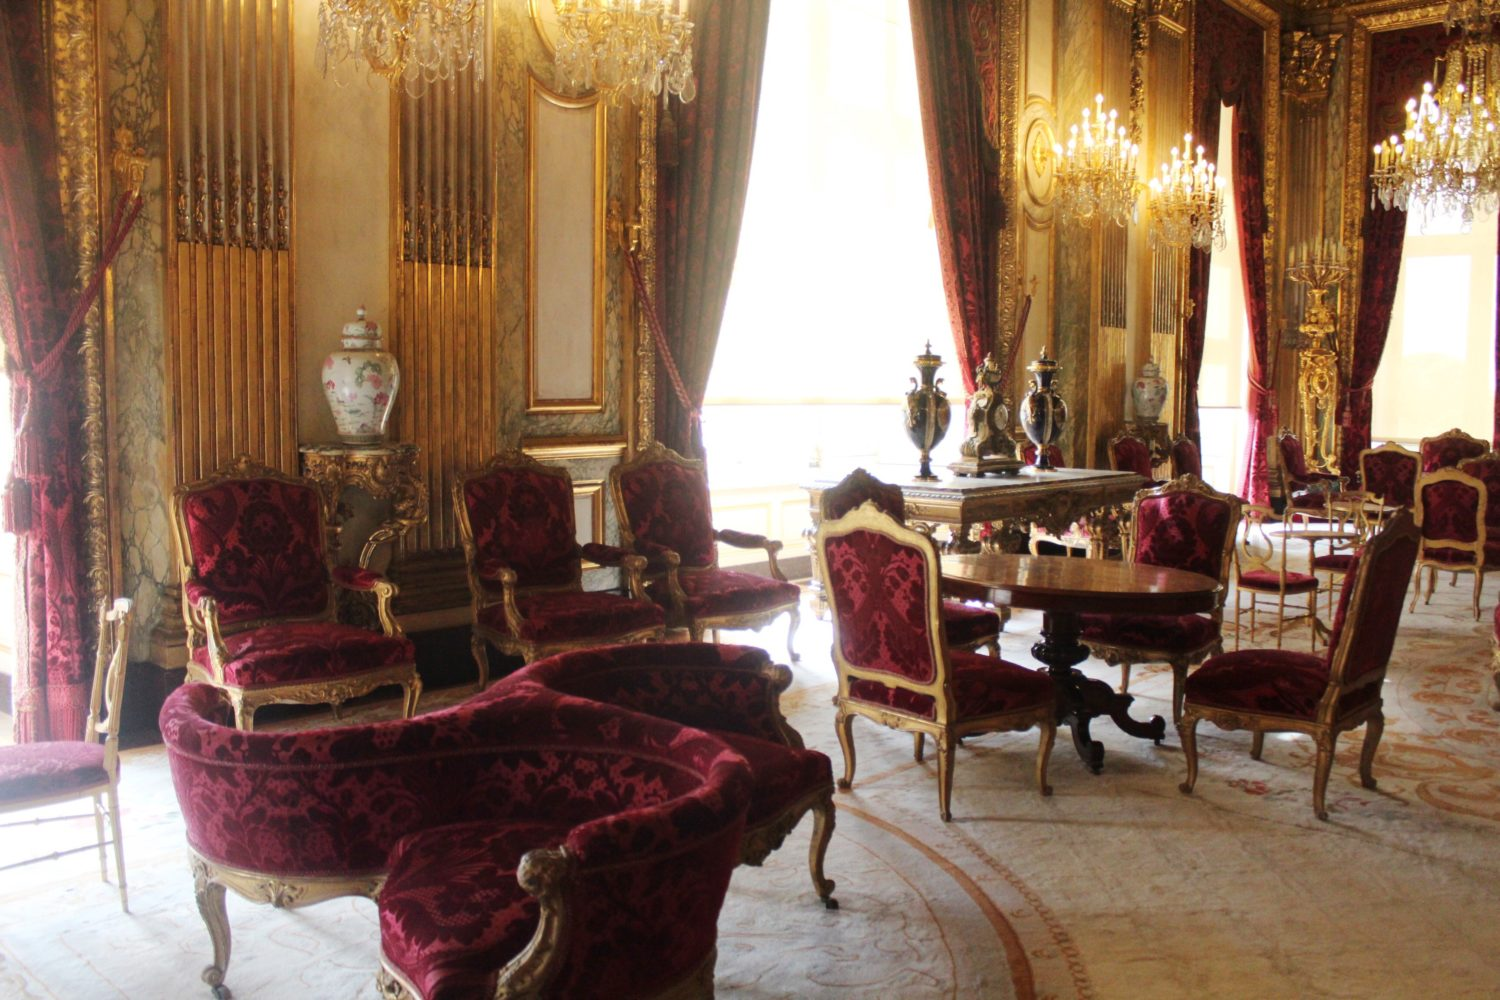 The Louvre The Napoleon III Apartments in Paris